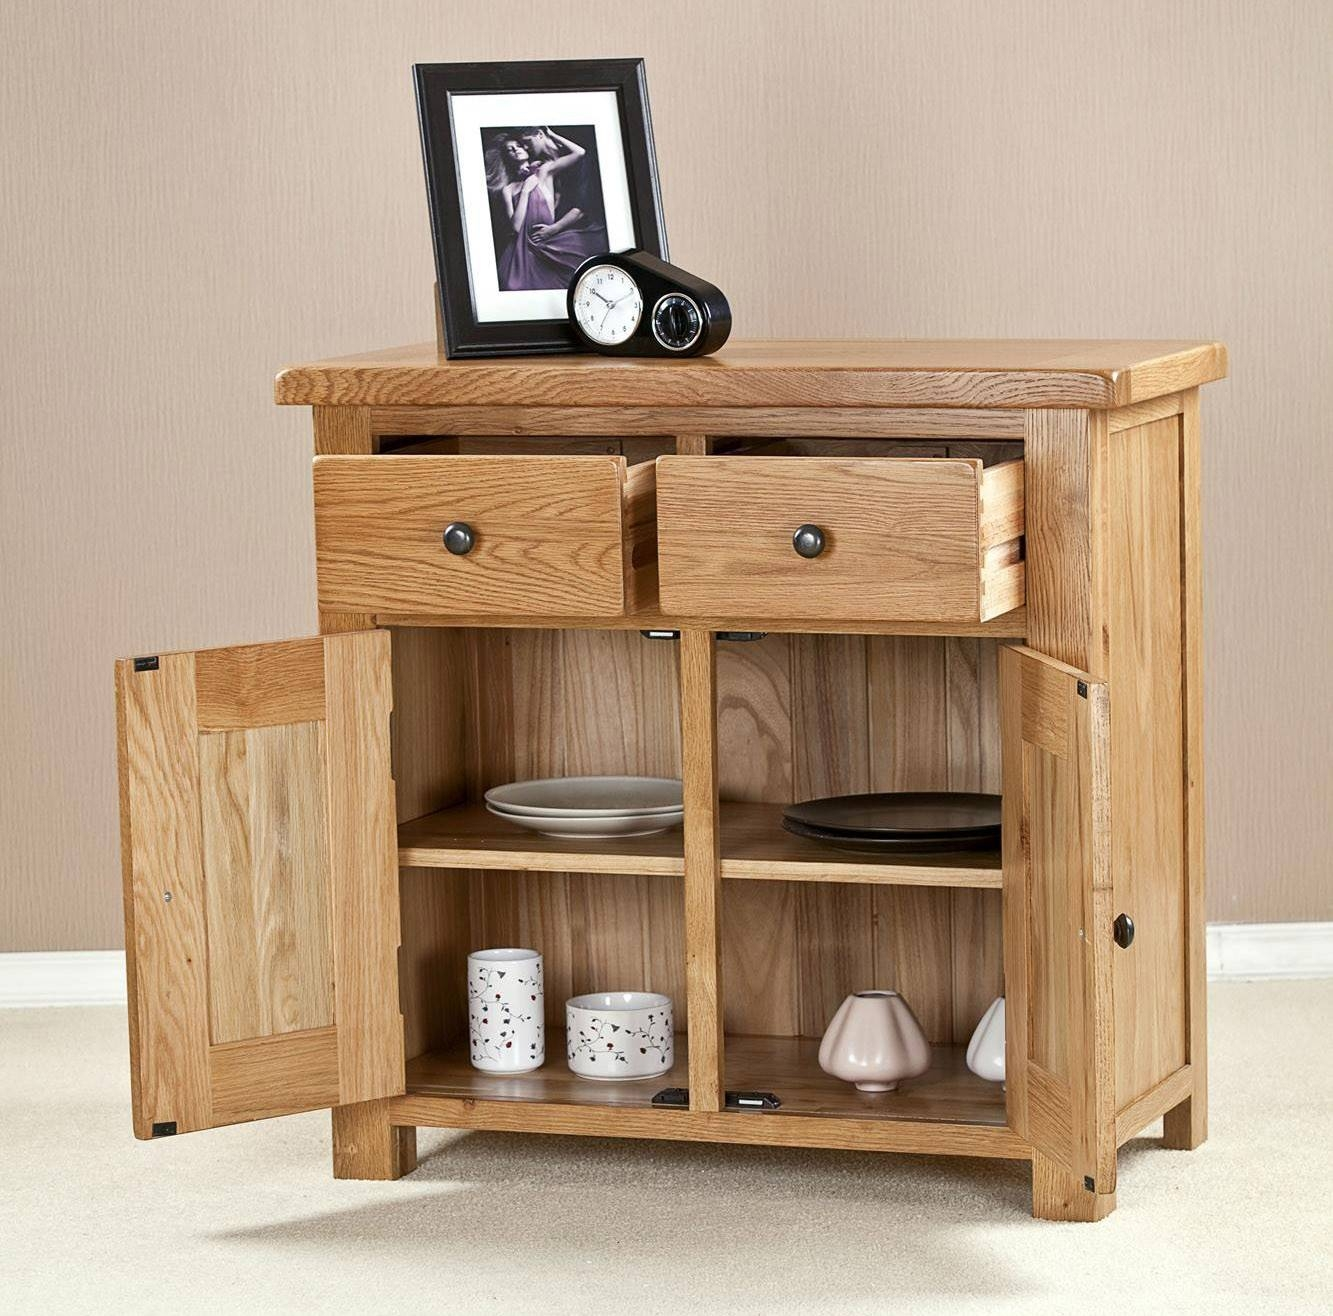 Cotswold Solid Oak 2 Door 2 Drawer Small Sideboard Regarding Oak Sideboards For Sale (View 5 of 30)